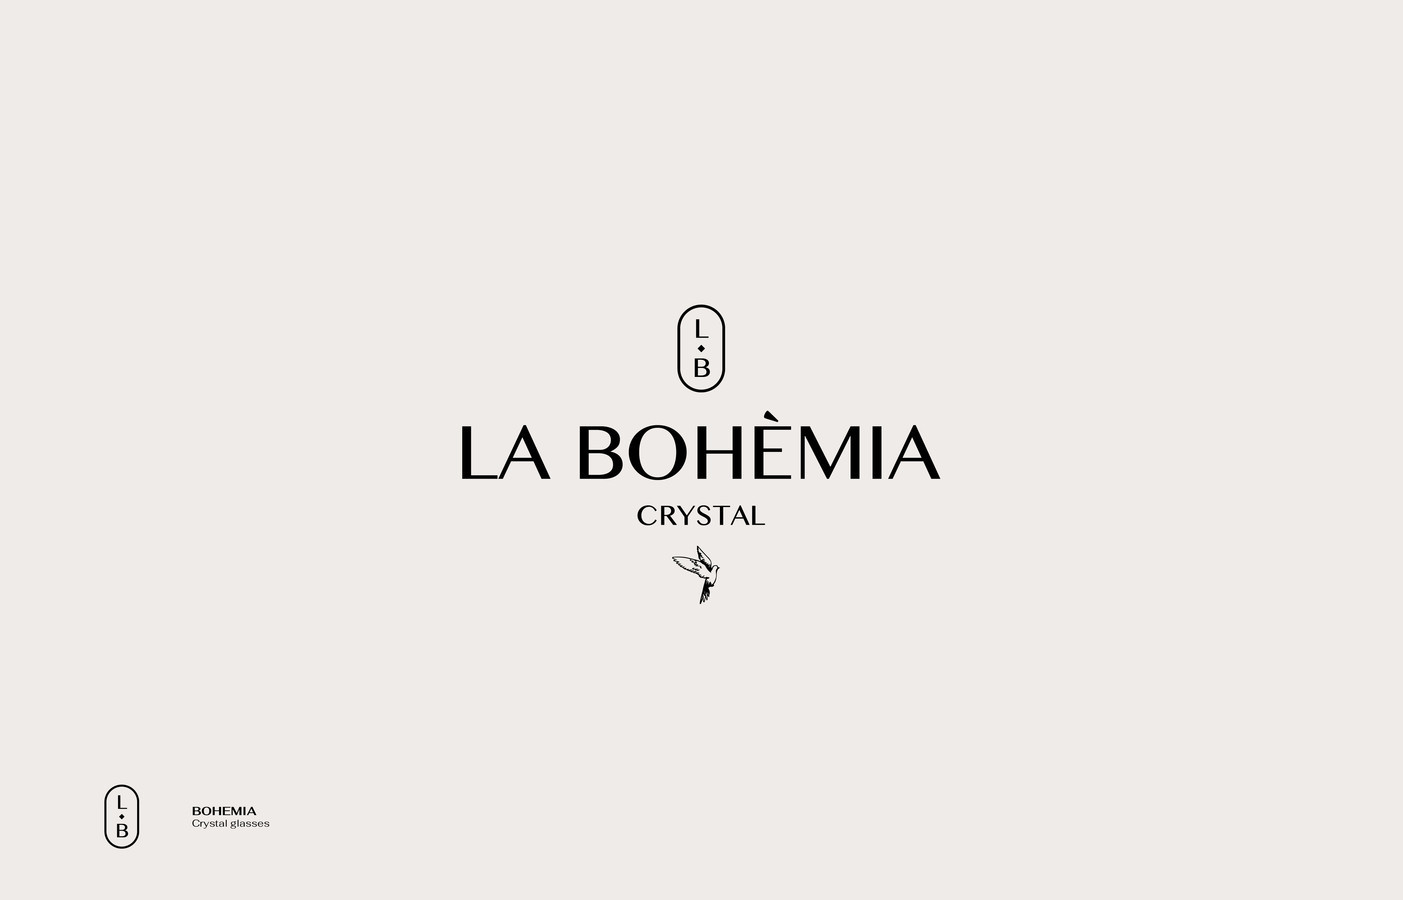 LA BOHEMIA - Crystal glasses